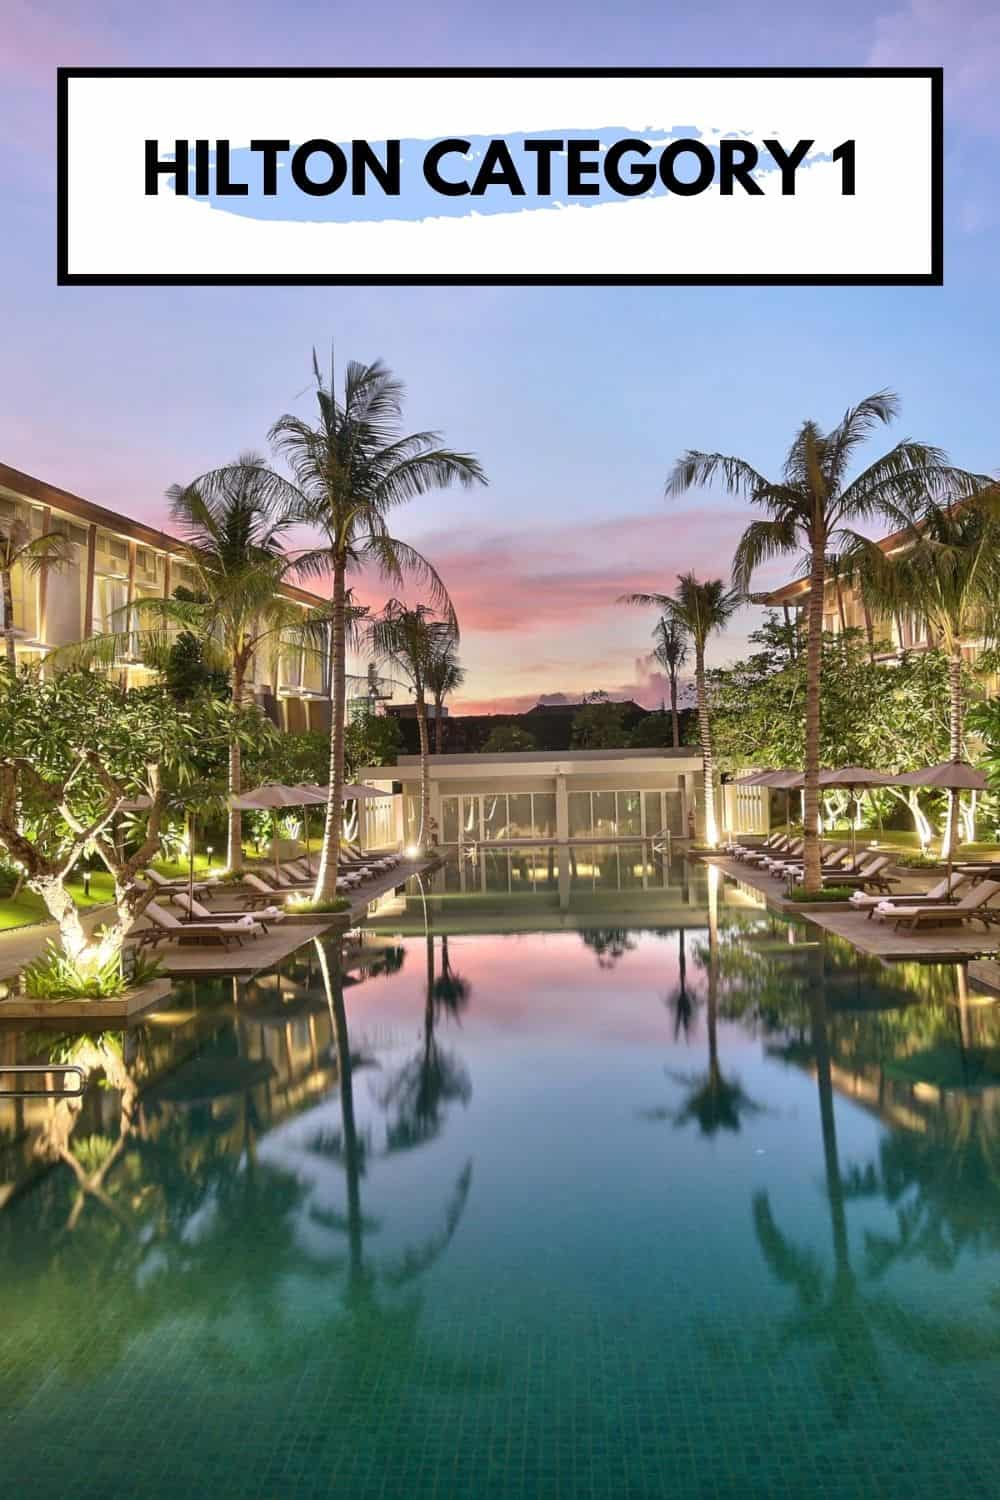 [2021] Best Hilton Honors Category 1 Hotels That Only Cost 5000 Points